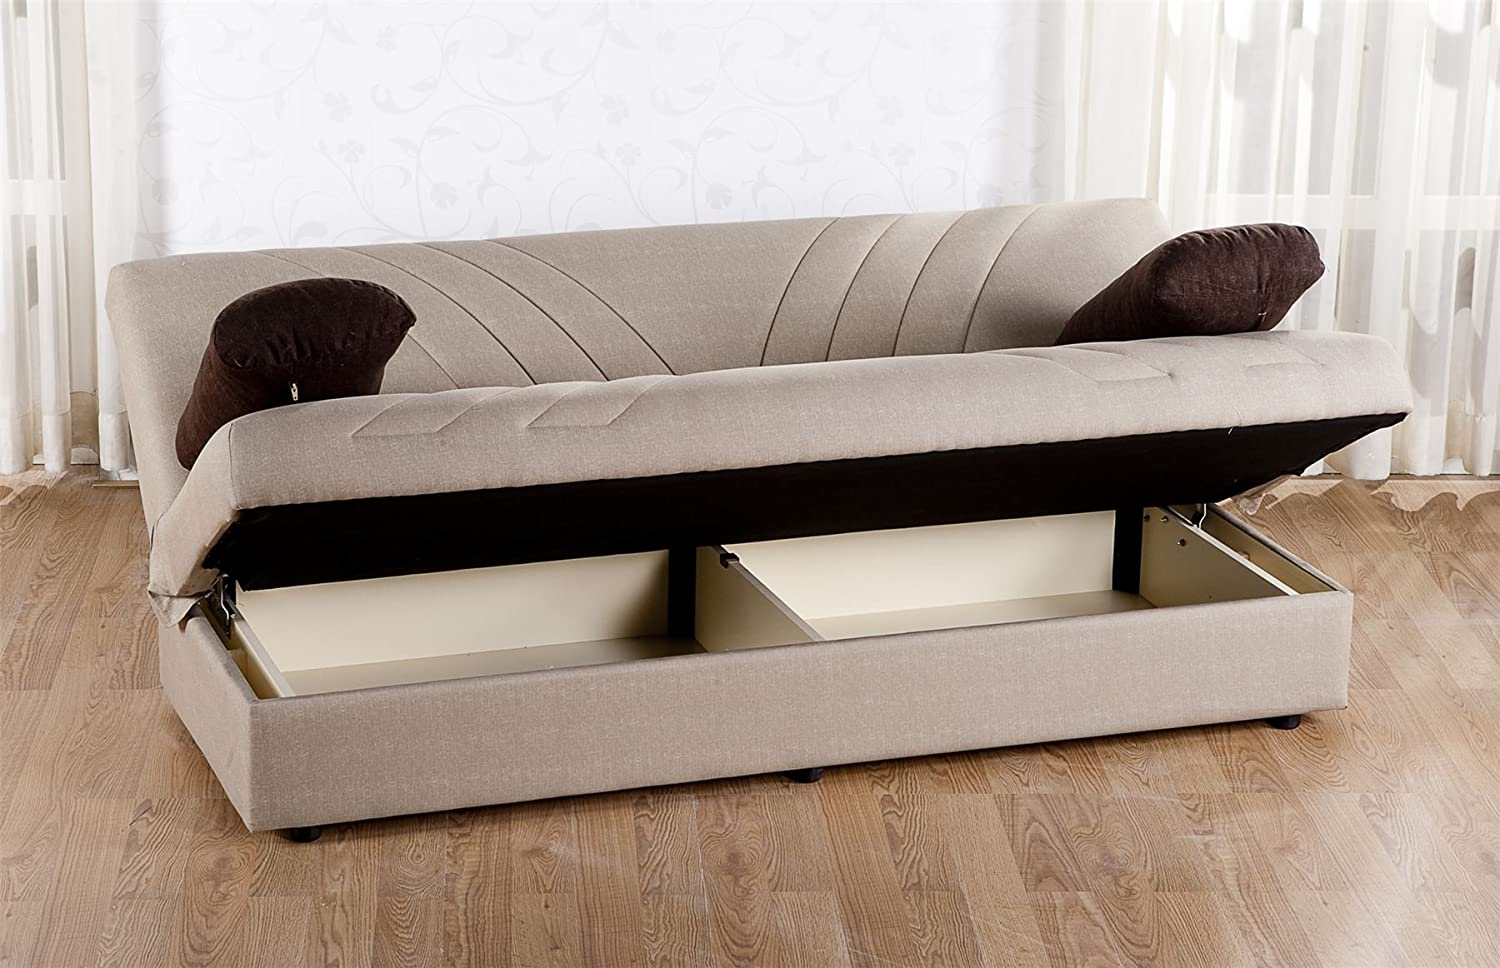 Max 3 Seat Sleeper - Naturale Cream